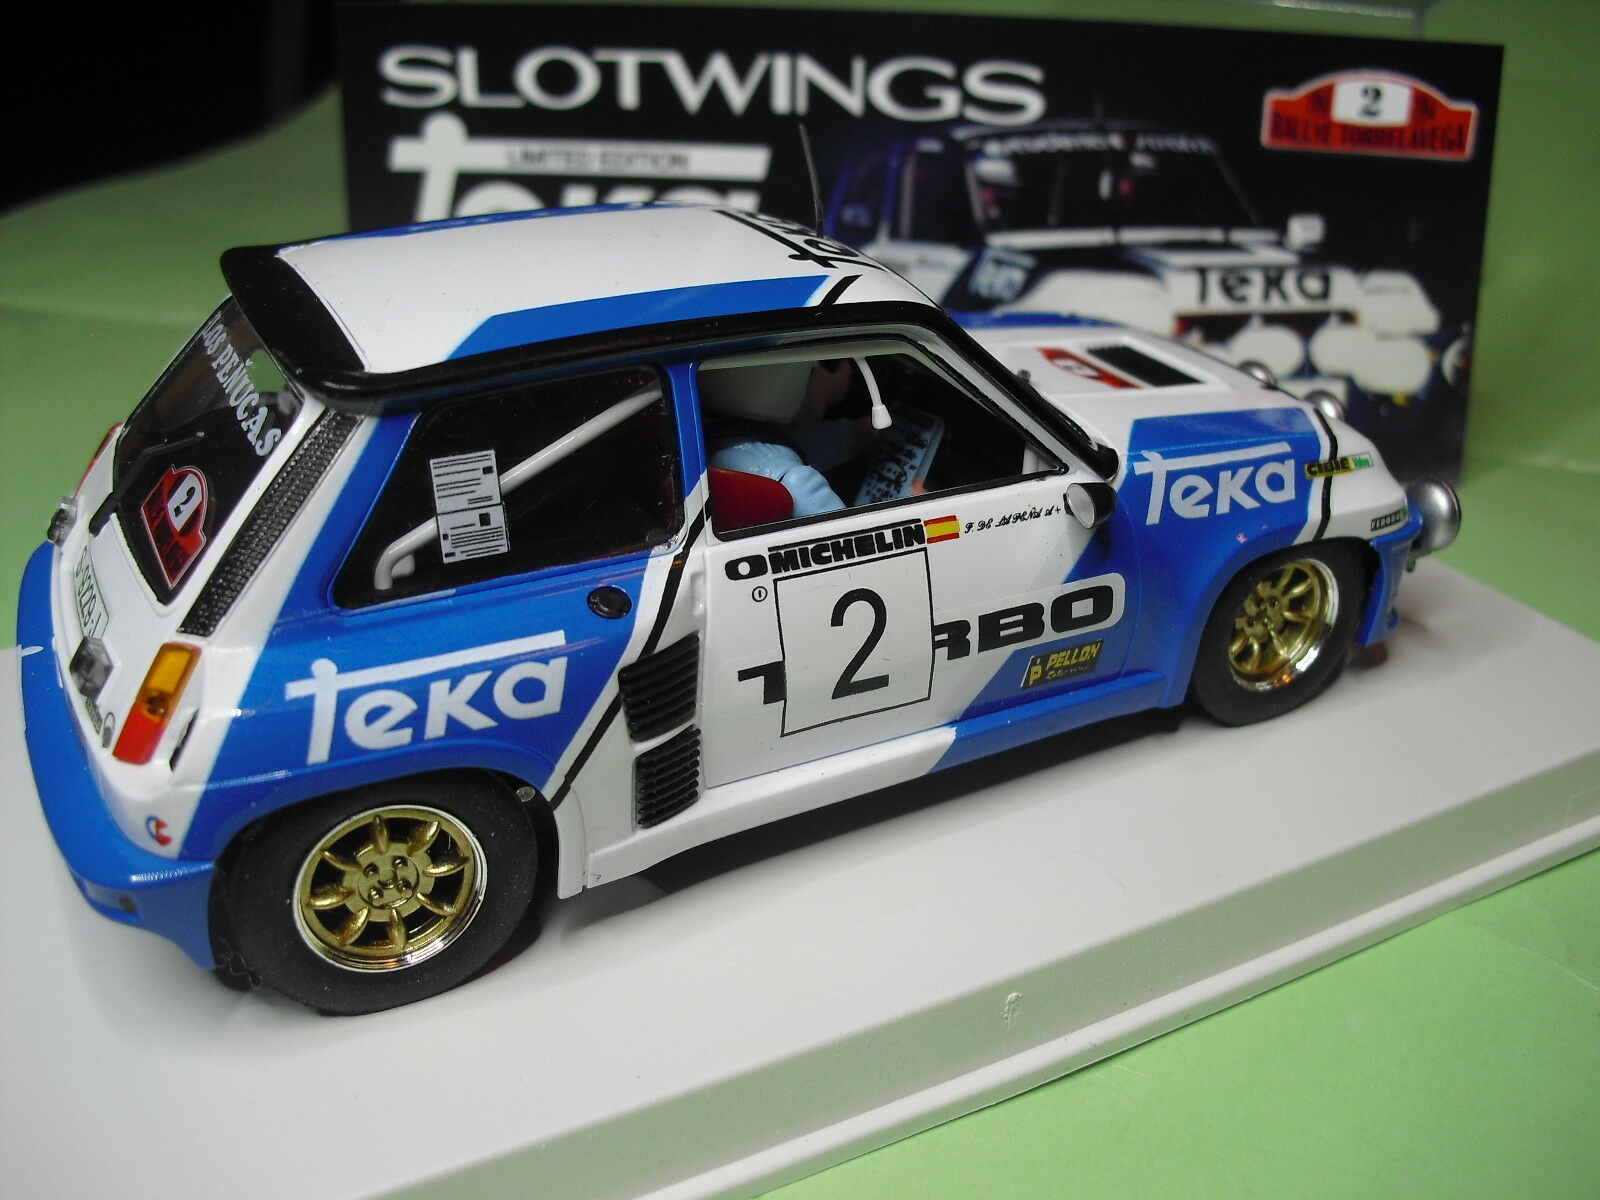 SLOTWINGS W037-1SP RENAULT 5 TURBO 1983 SOLO 100 UNDIDADES